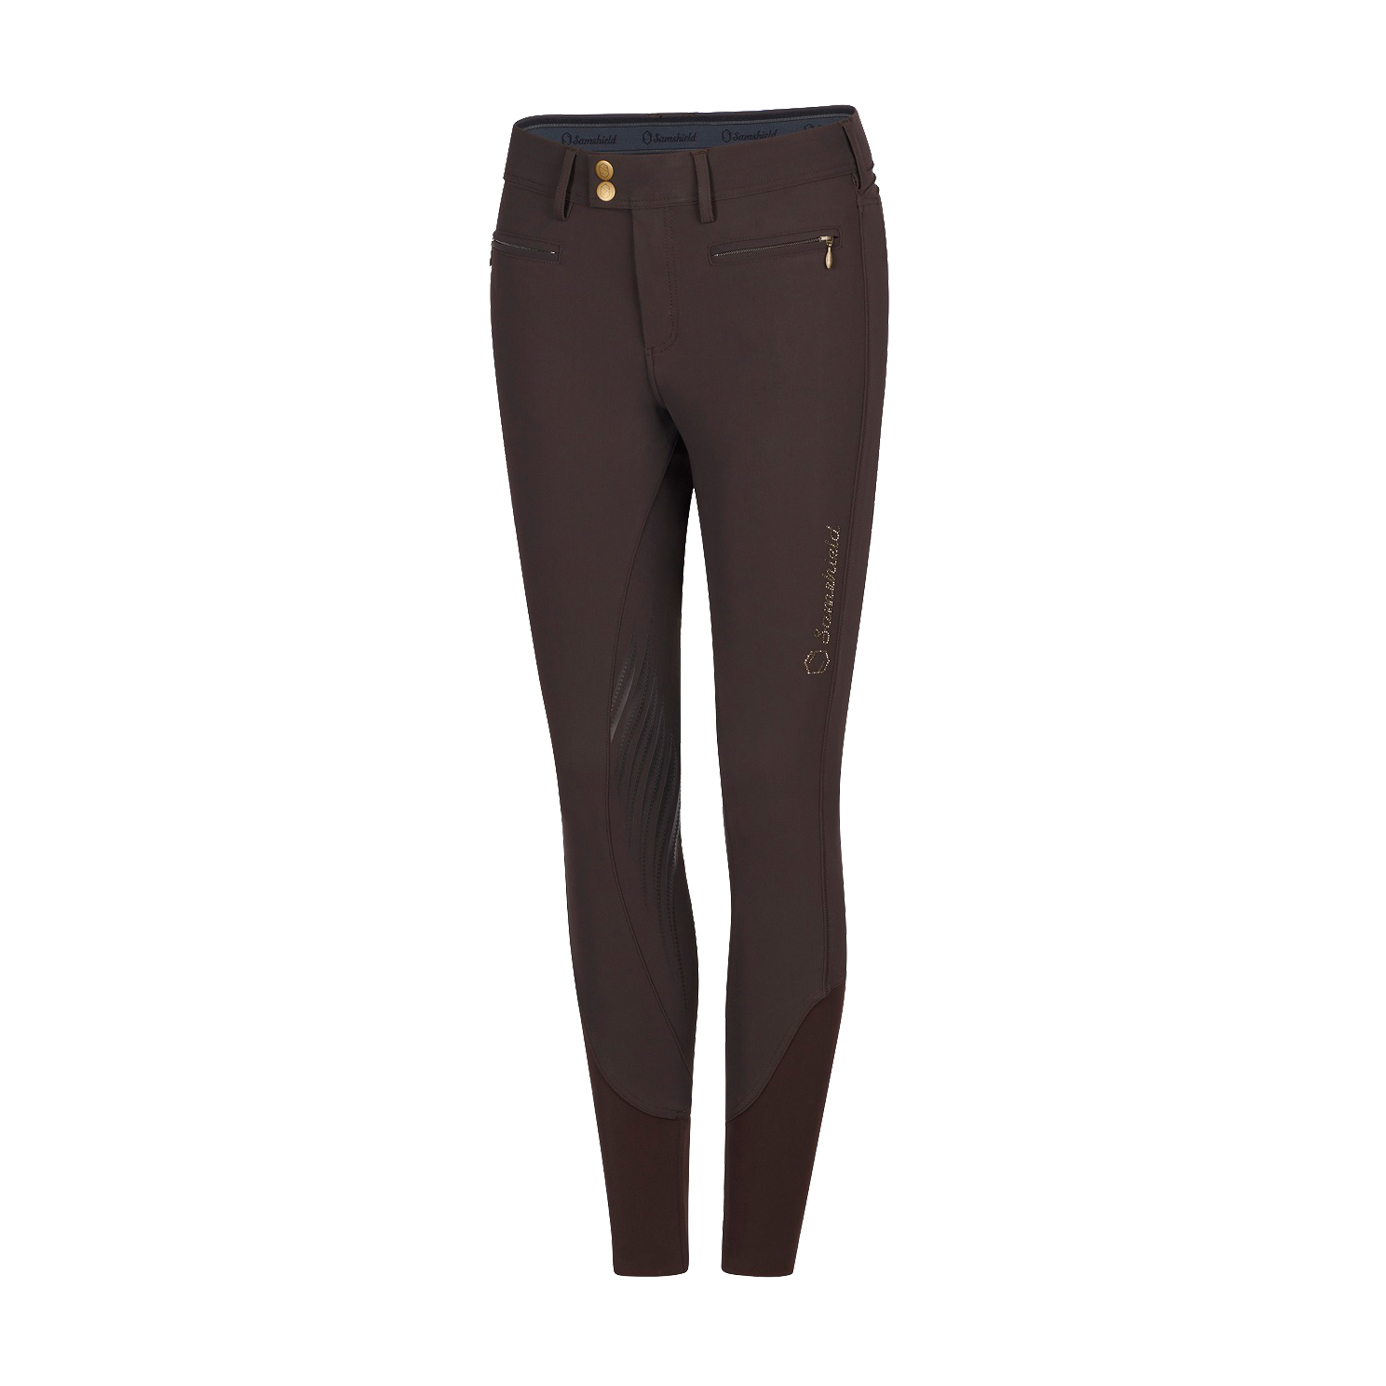 Samshield Adele Ladies Brown Equestrian Breeches